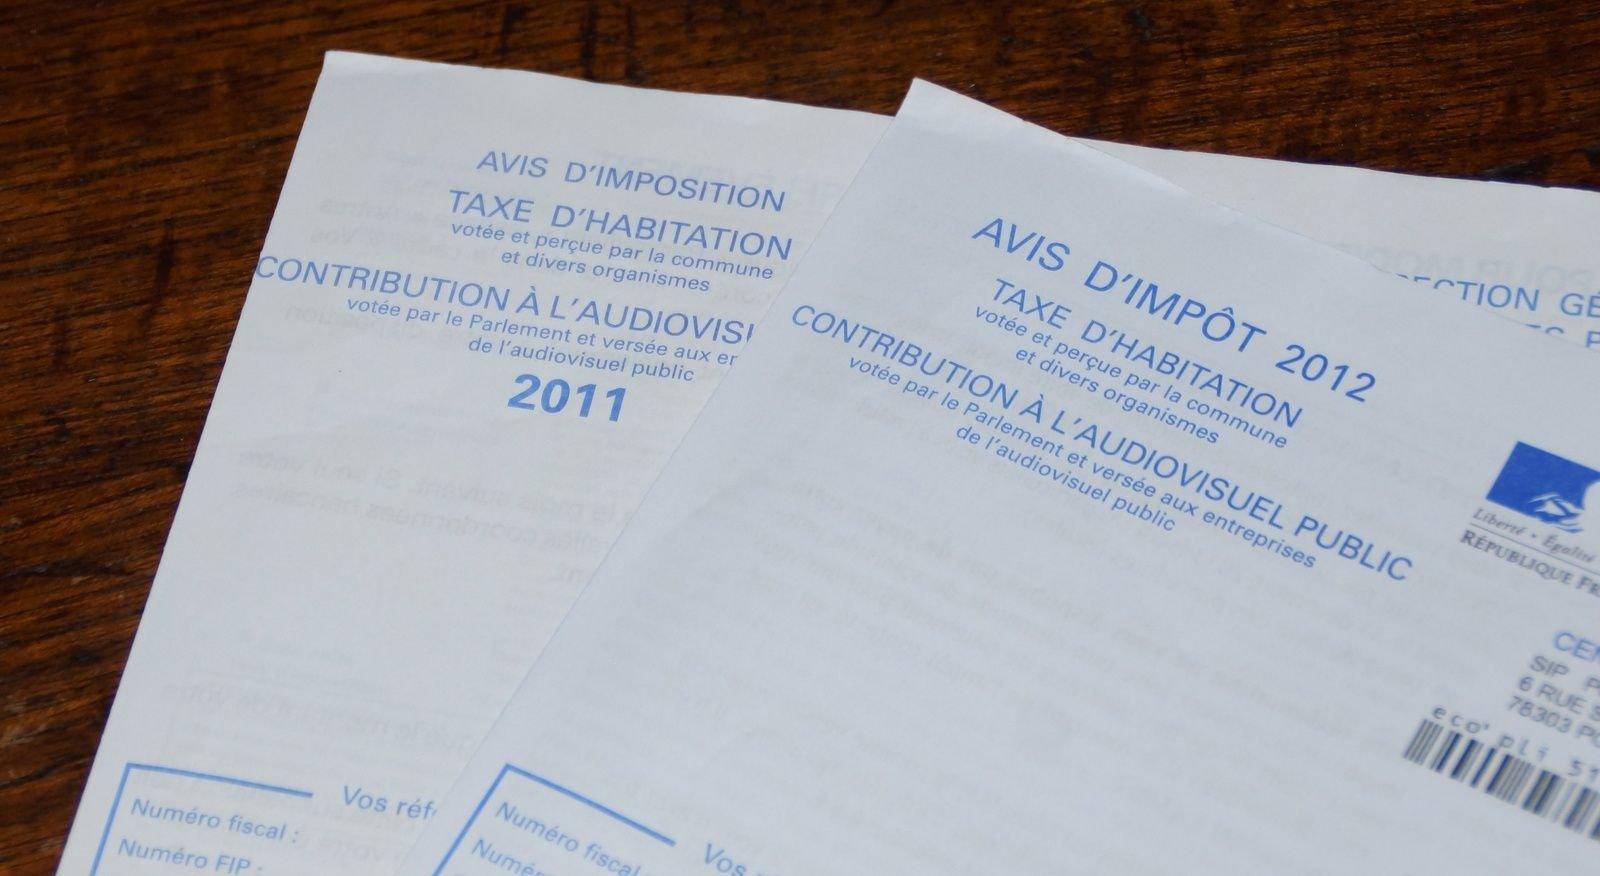 Justificatif De Domicile La Liste Des Documents Acceptes Asaeecc